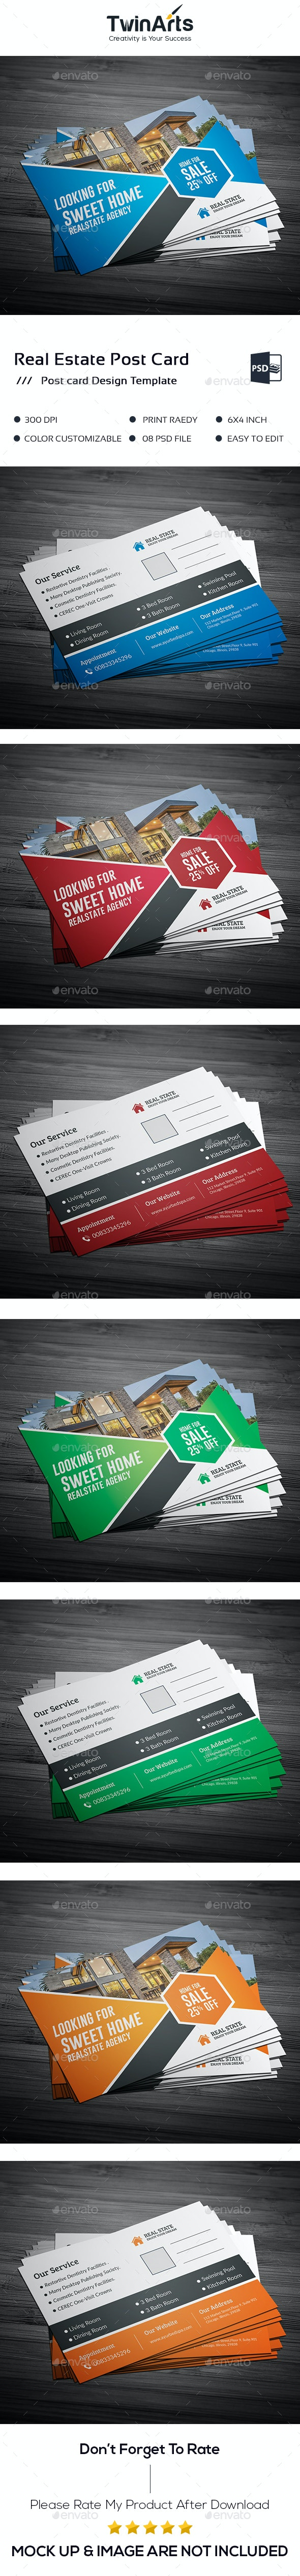 Real Estate Post Card Design - Cards & Invites Print Templates